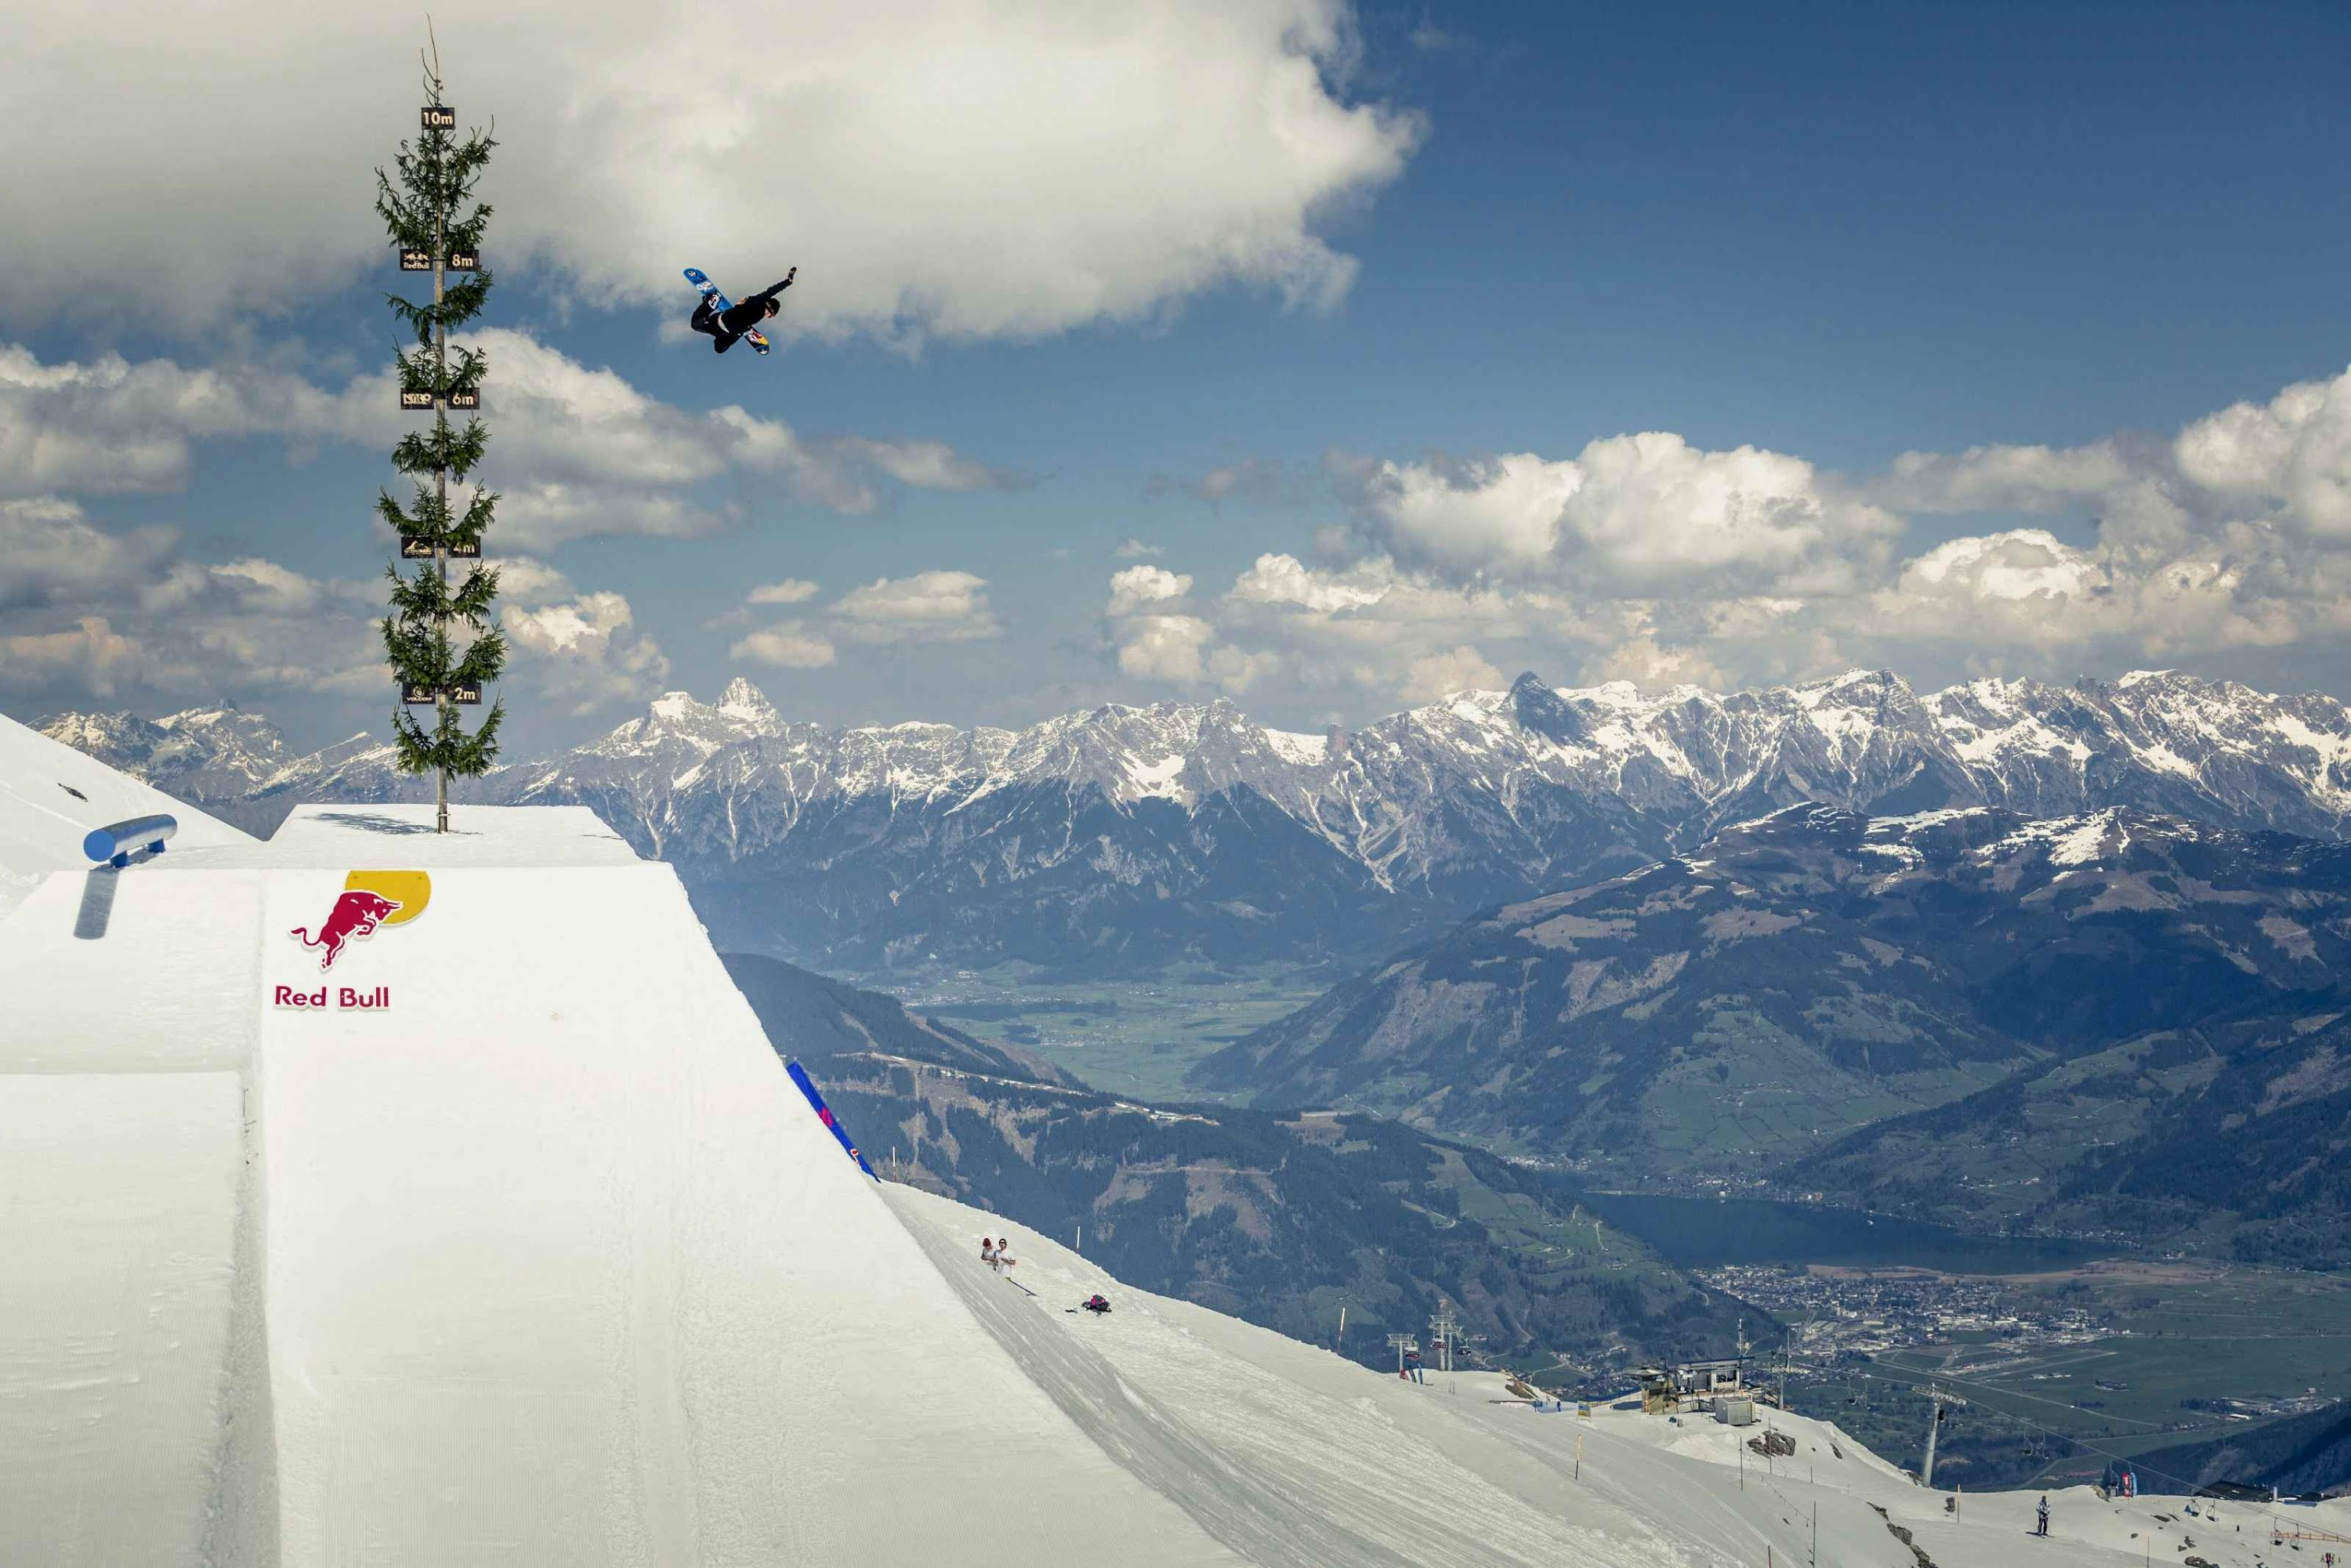 Snowboard Session on Massive Hip Jump - YouTube